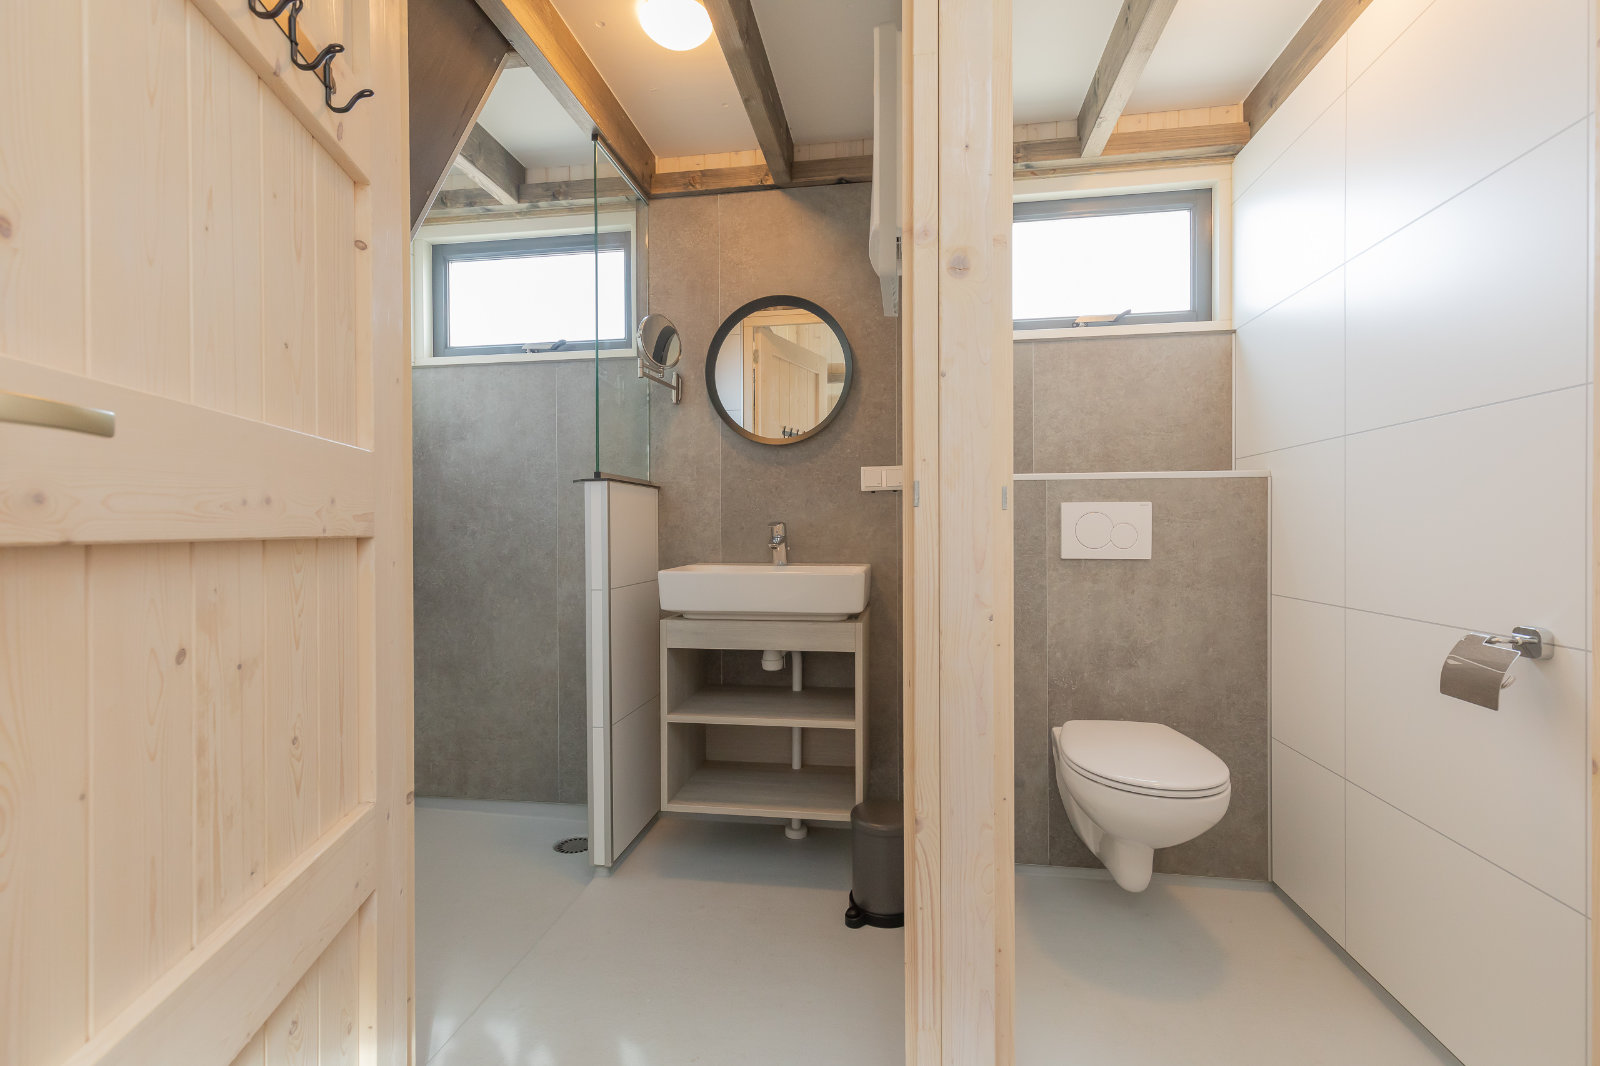 MK4 tiny house - shower and toilet